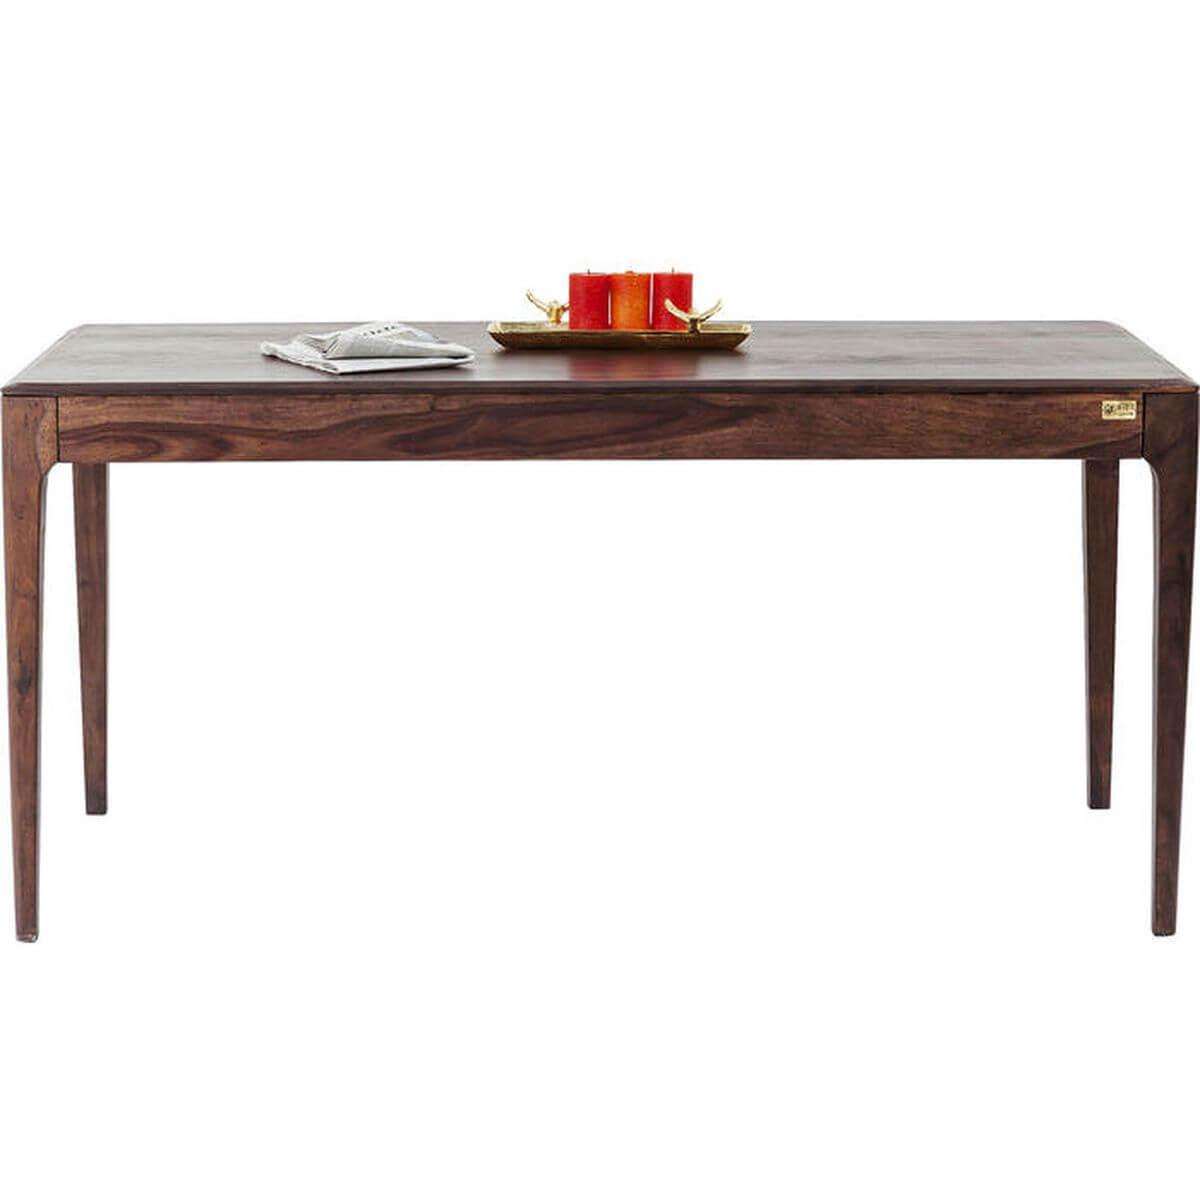 Table Brooklyn Walnut Kare Design 200x100cm